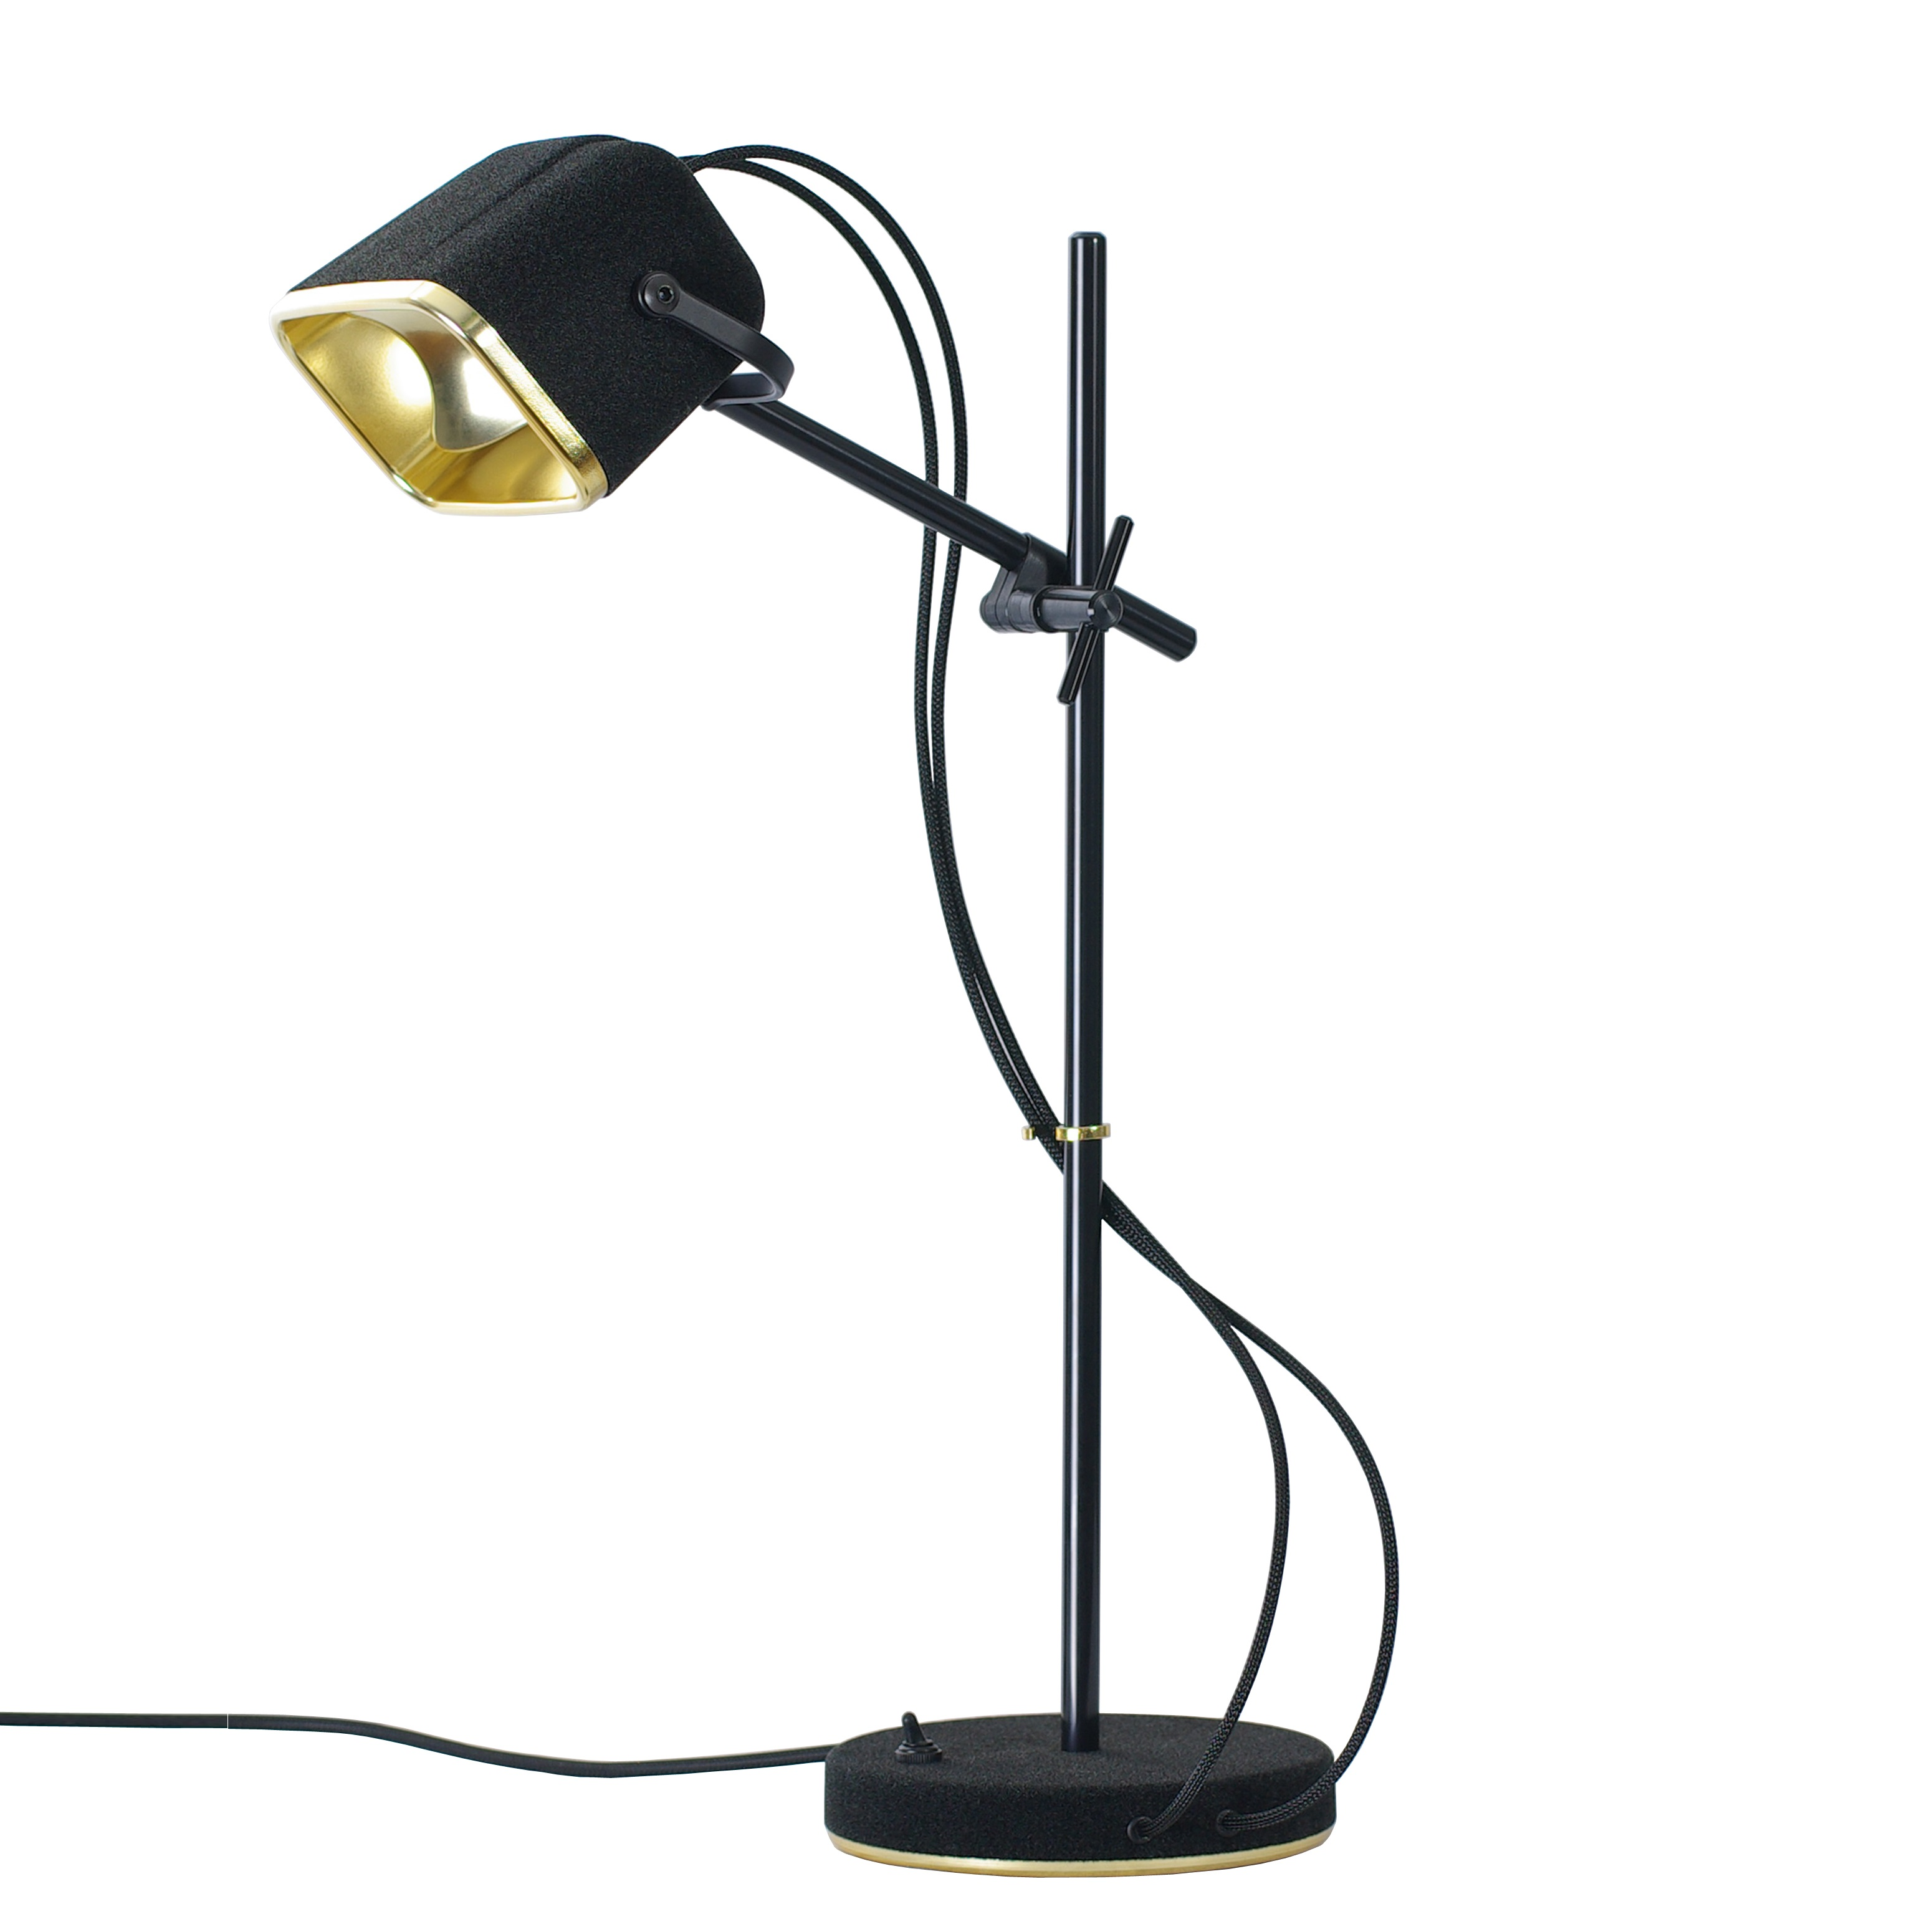 Lampe PoserMobVelours À PoserMobVelours Lampe NoirH55cm Swabdesign NoirH55cm À Lampe Swabdesign odBCxe